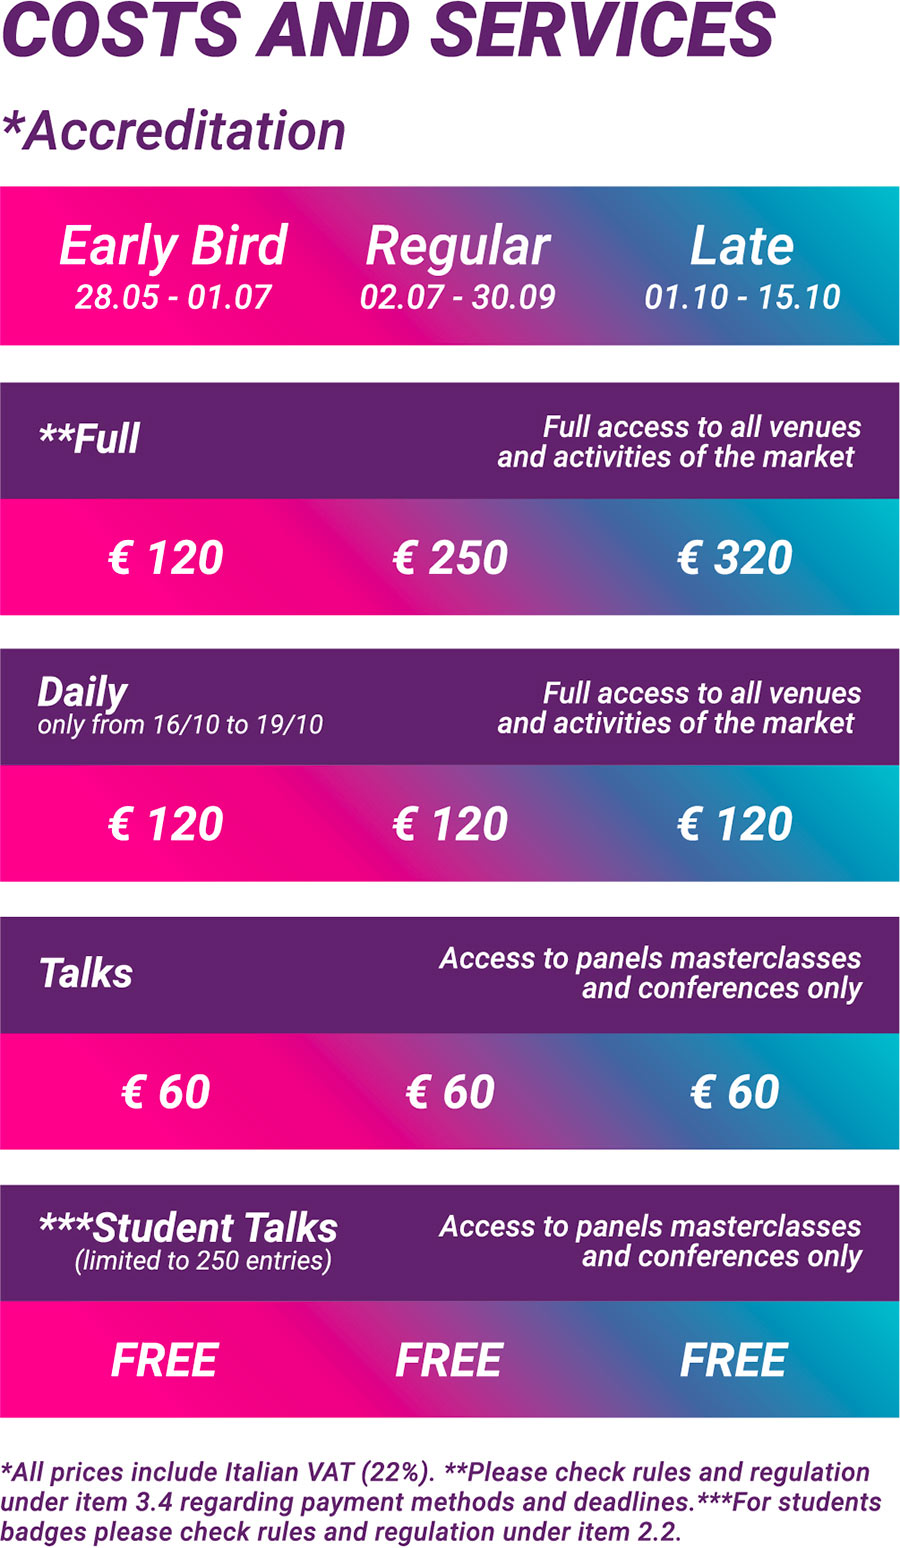 MIA 2019 - Costs and services